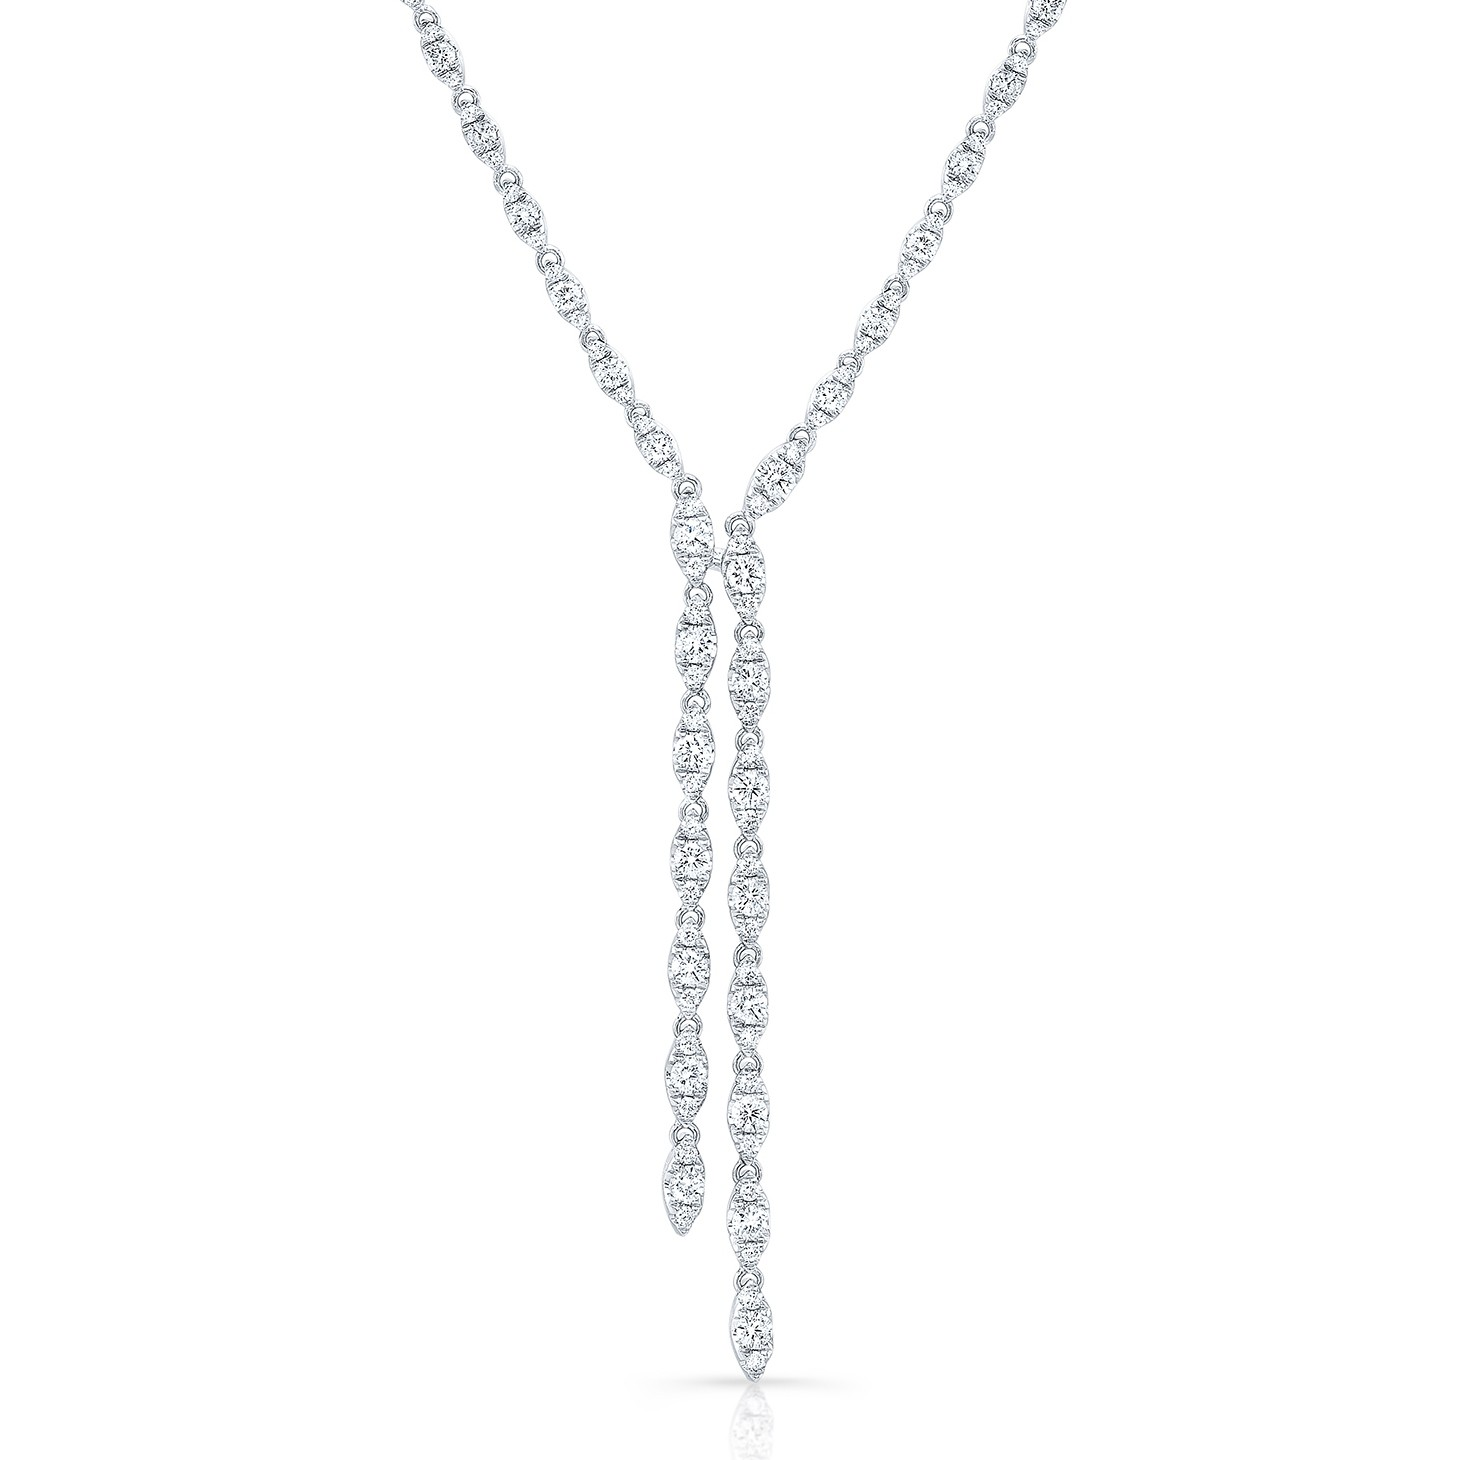 Uneek Diamond Necklace, in 14K White Gold